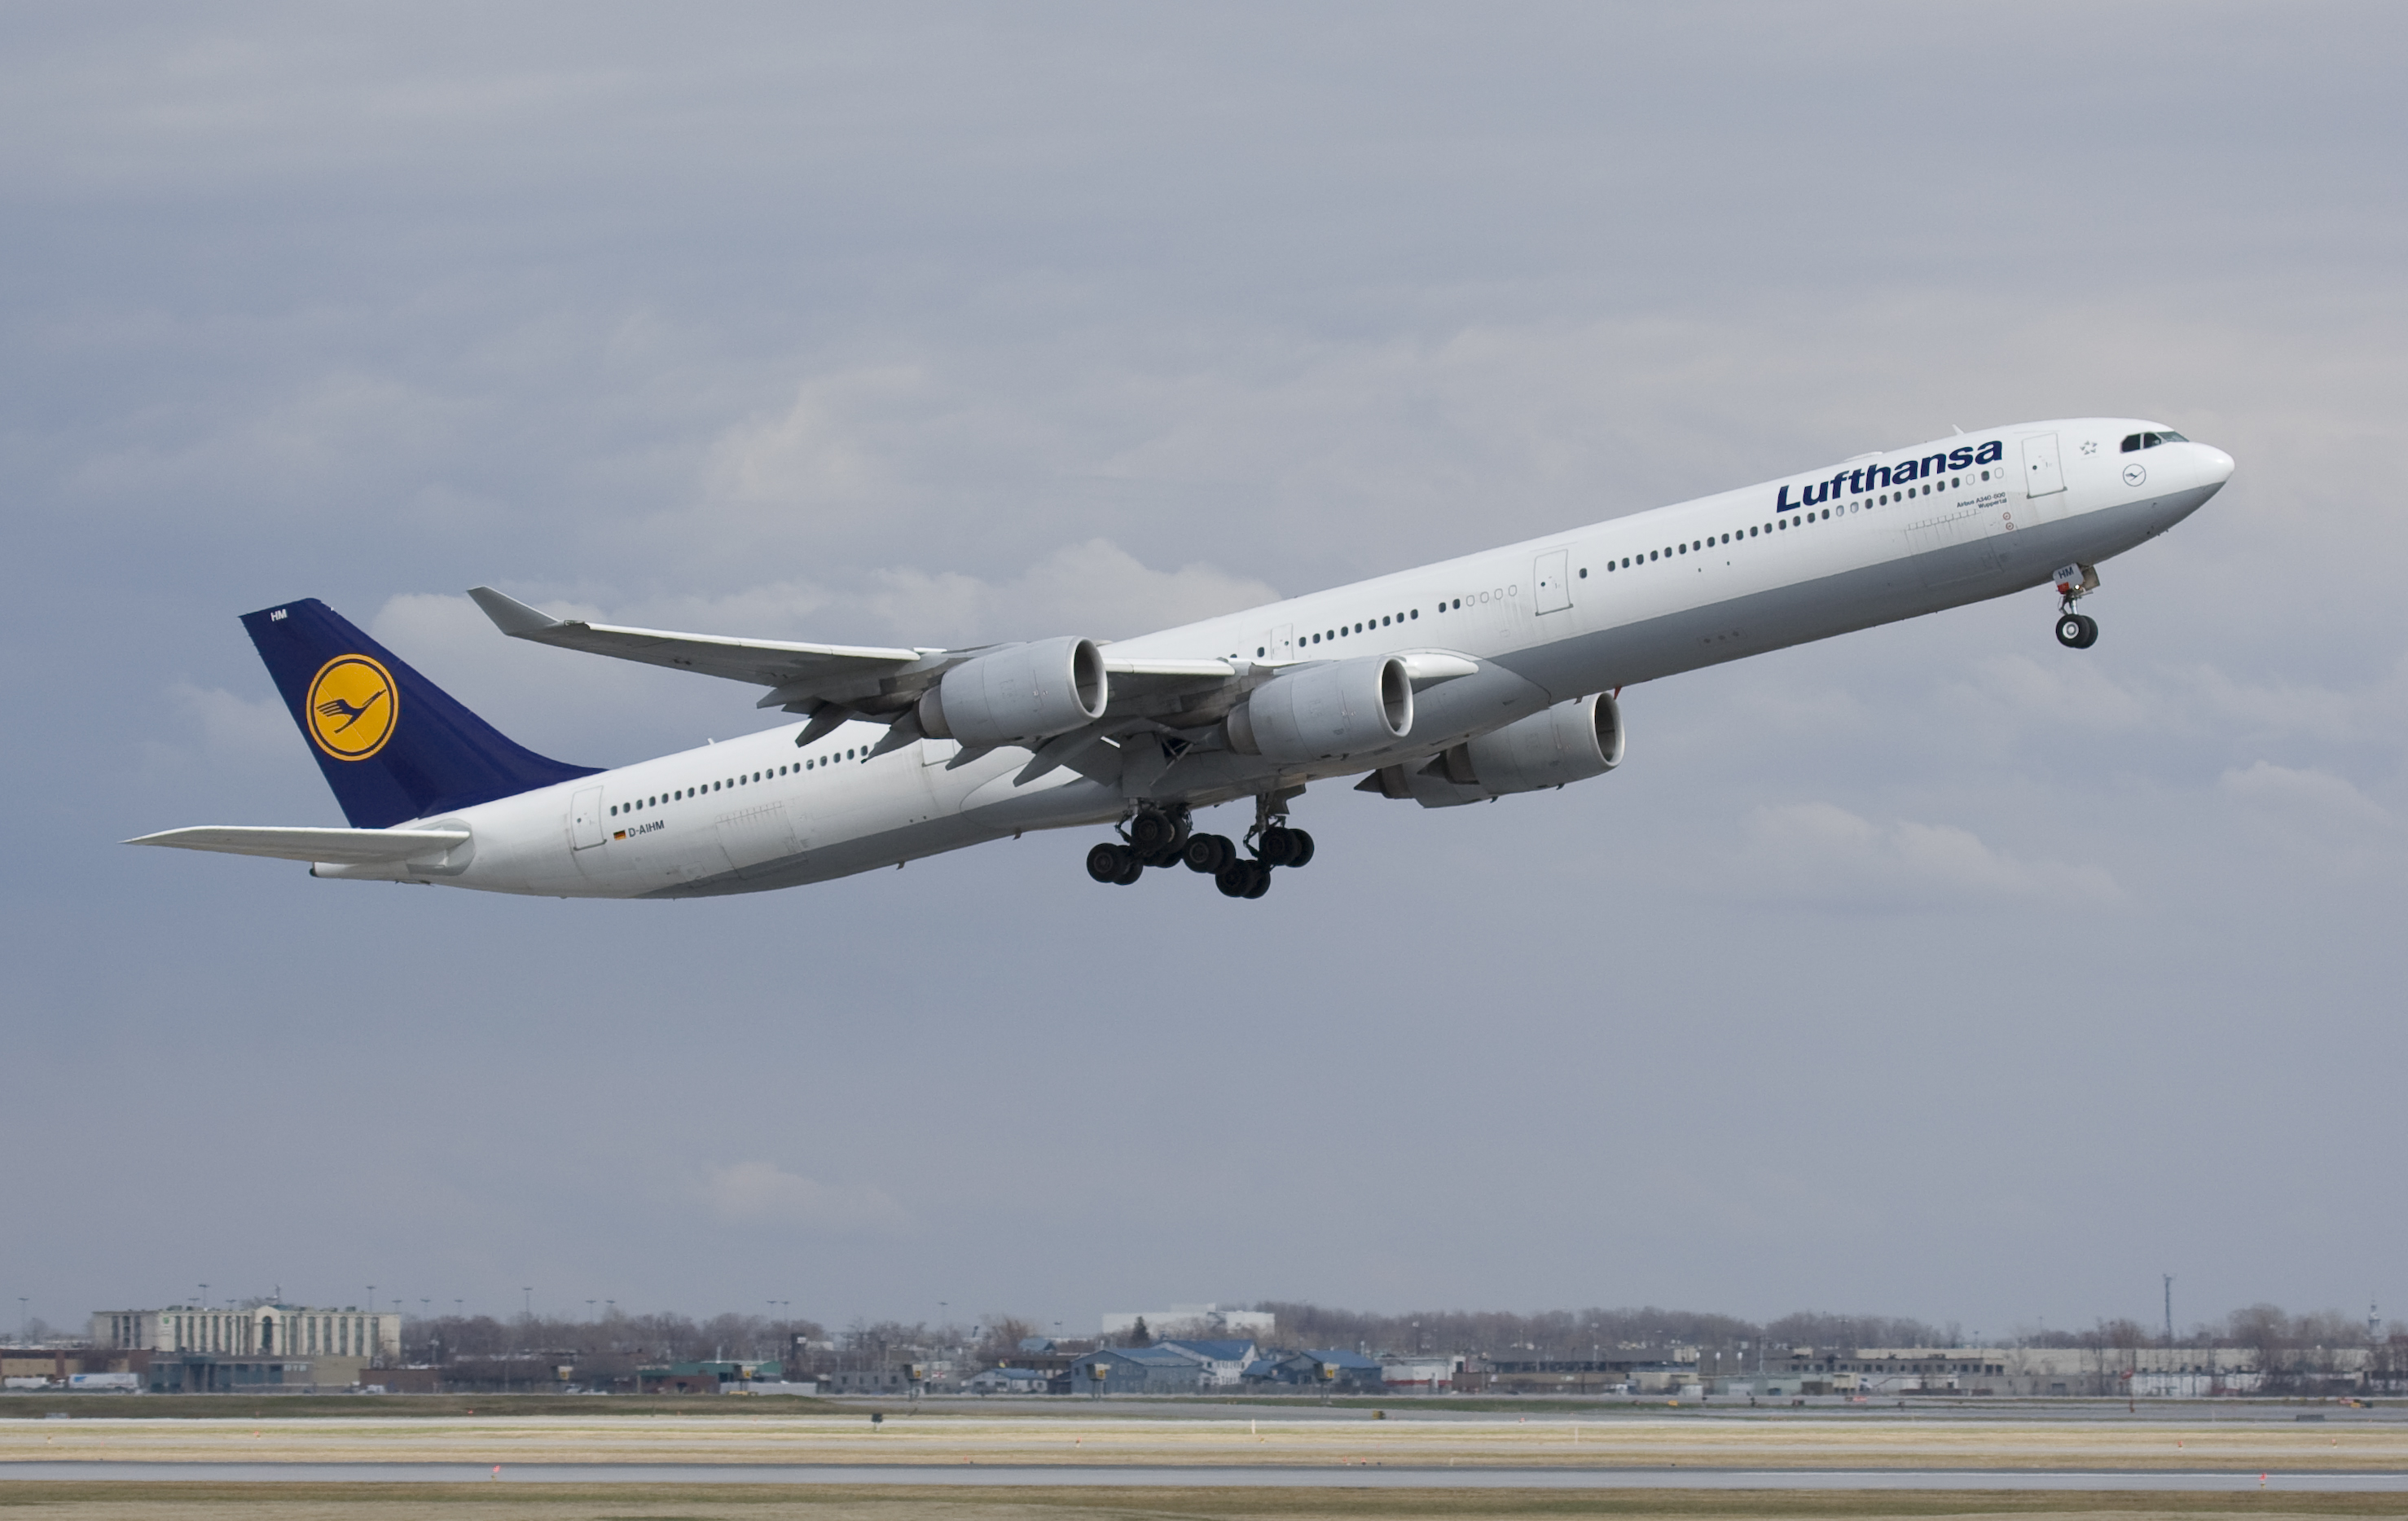 lufthansa starts airbus a340 600 phase out. Black Bedroom Furniture Sets. Home Design Ideas